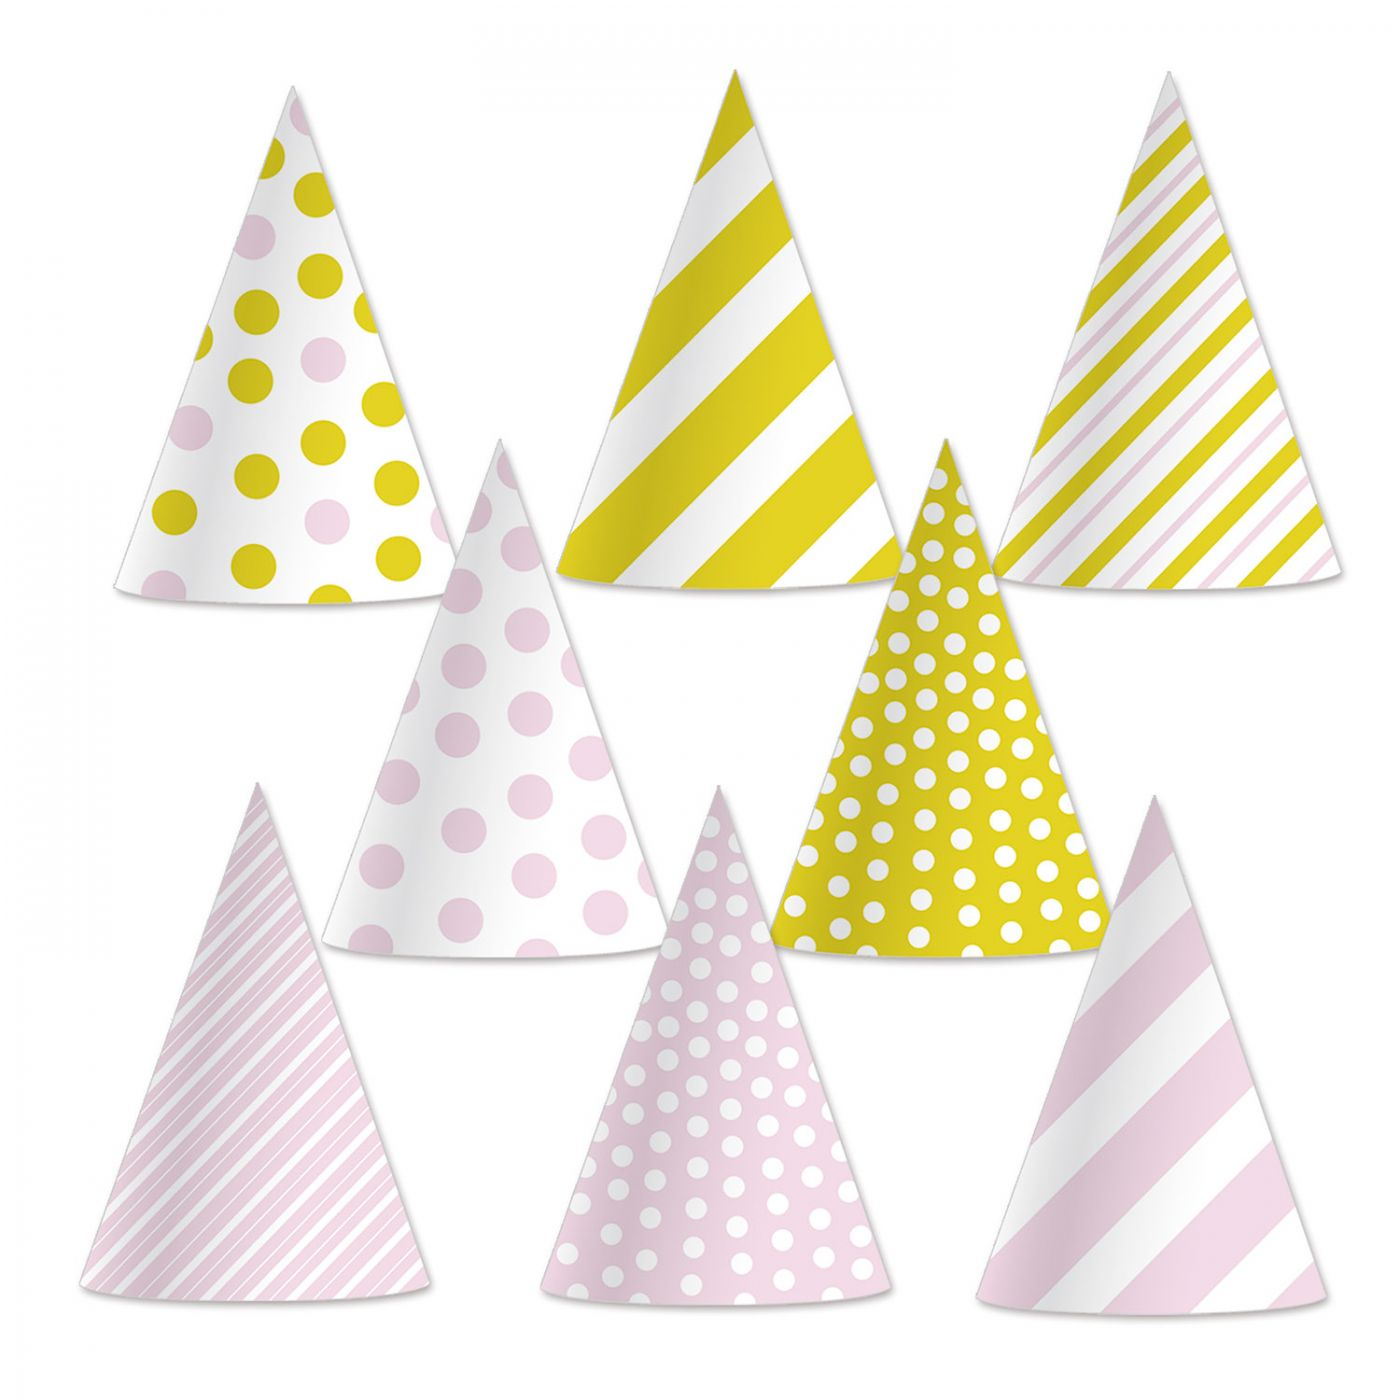 Pink & Gold Cone Hats image